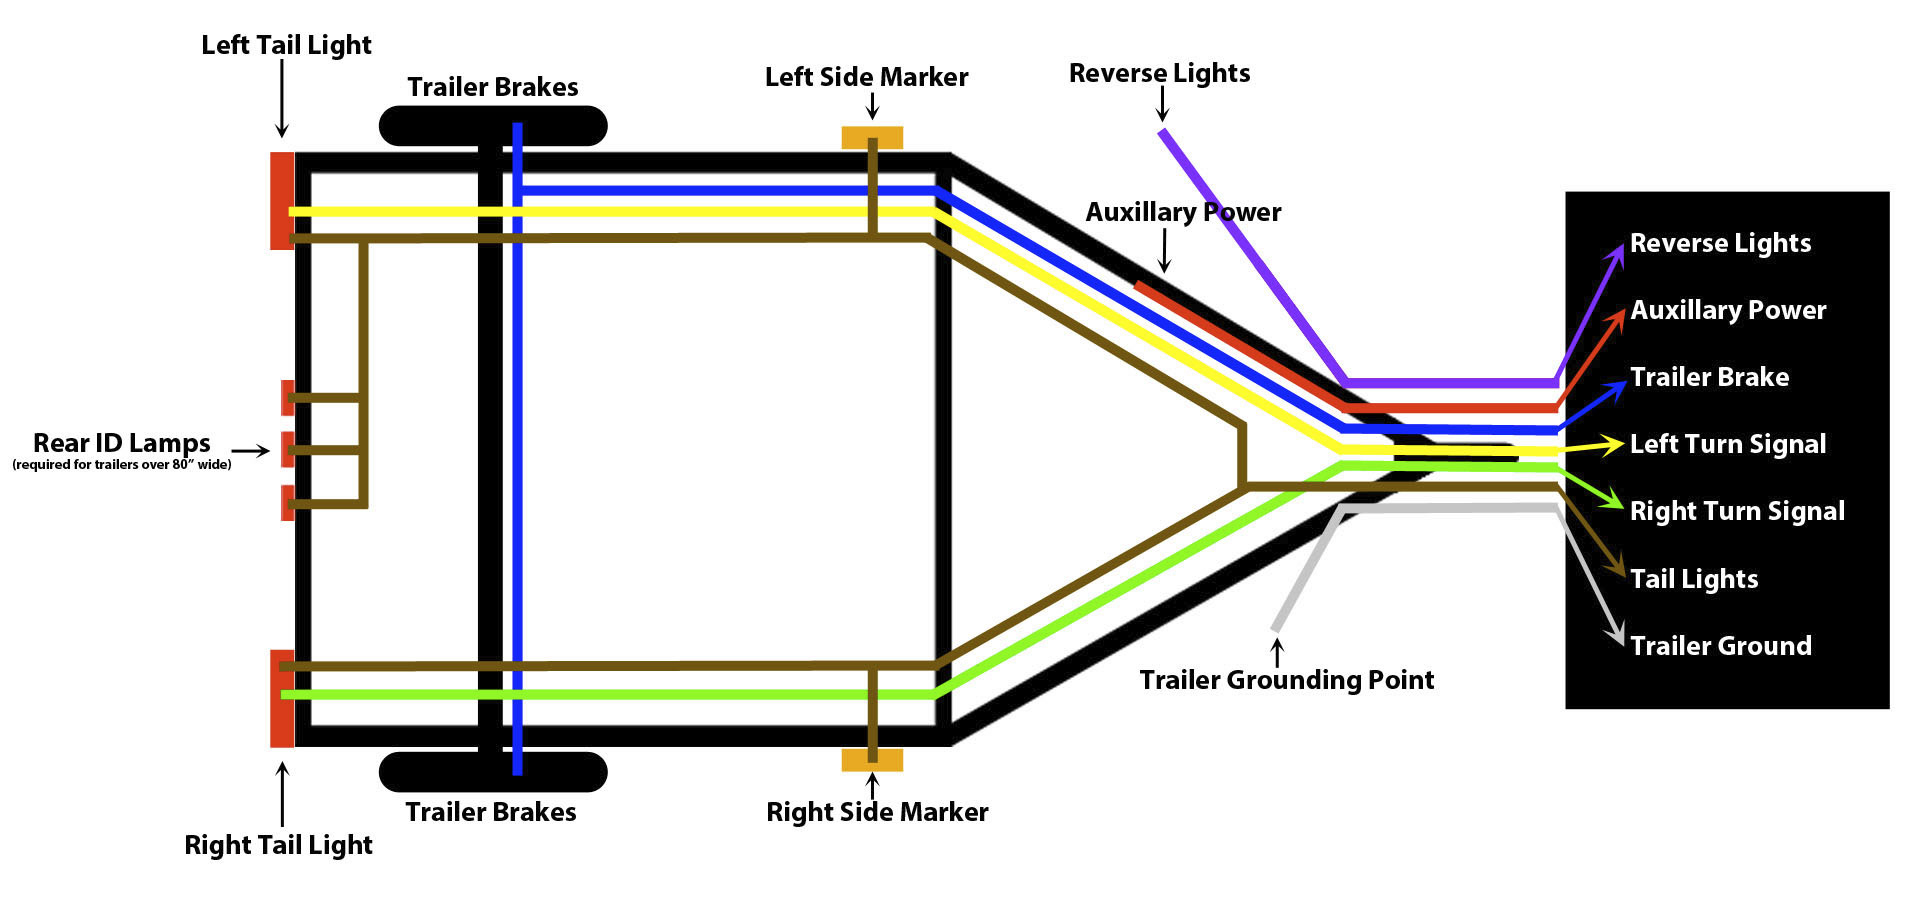 How To Wire Trailer Lights - Trailer Wiring Guide & Videos - A Trailer Wiring Diagram